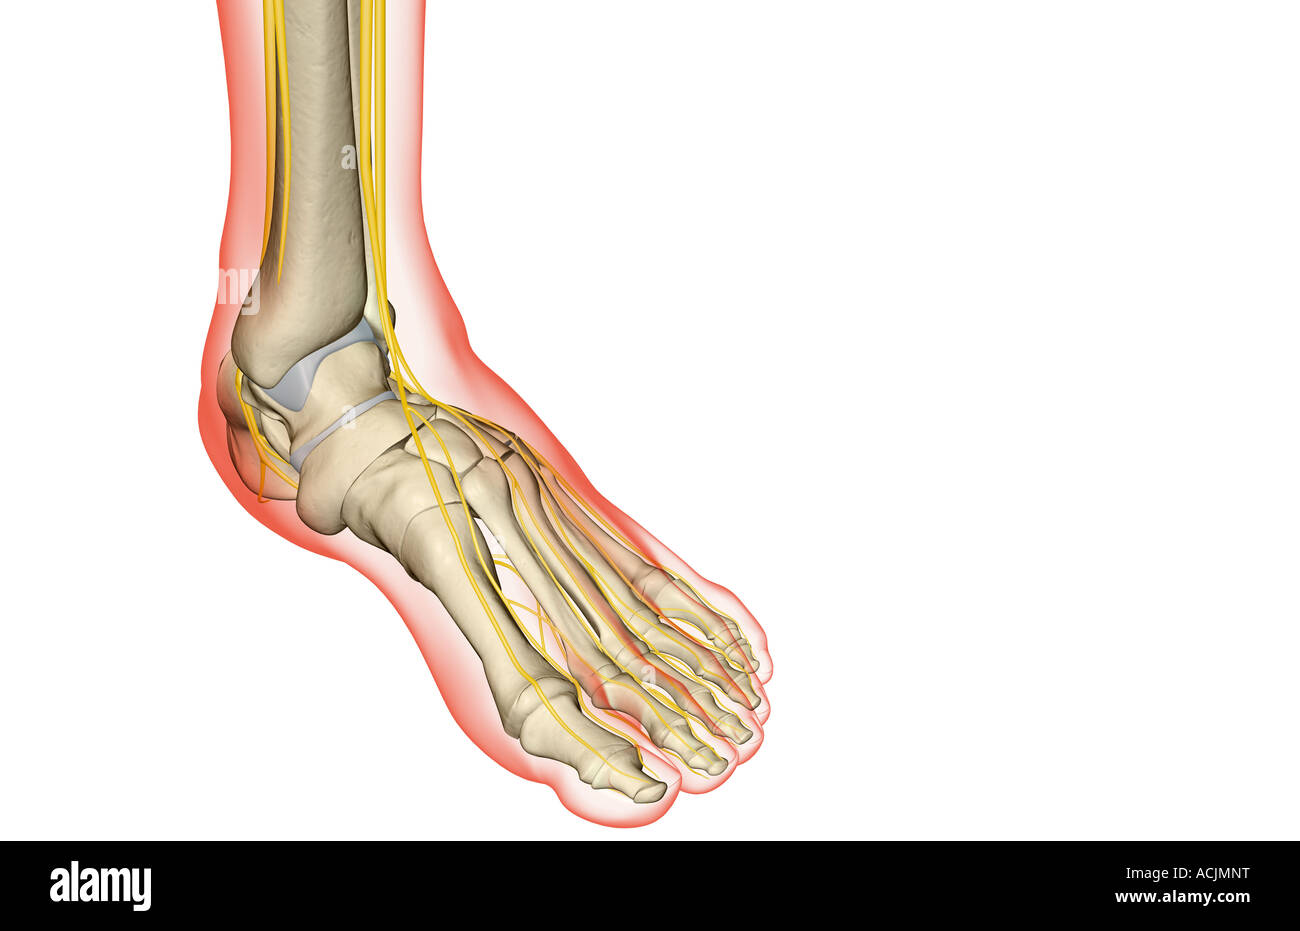 The nerves of the foot Stock Photo: 13171907 - Alamy